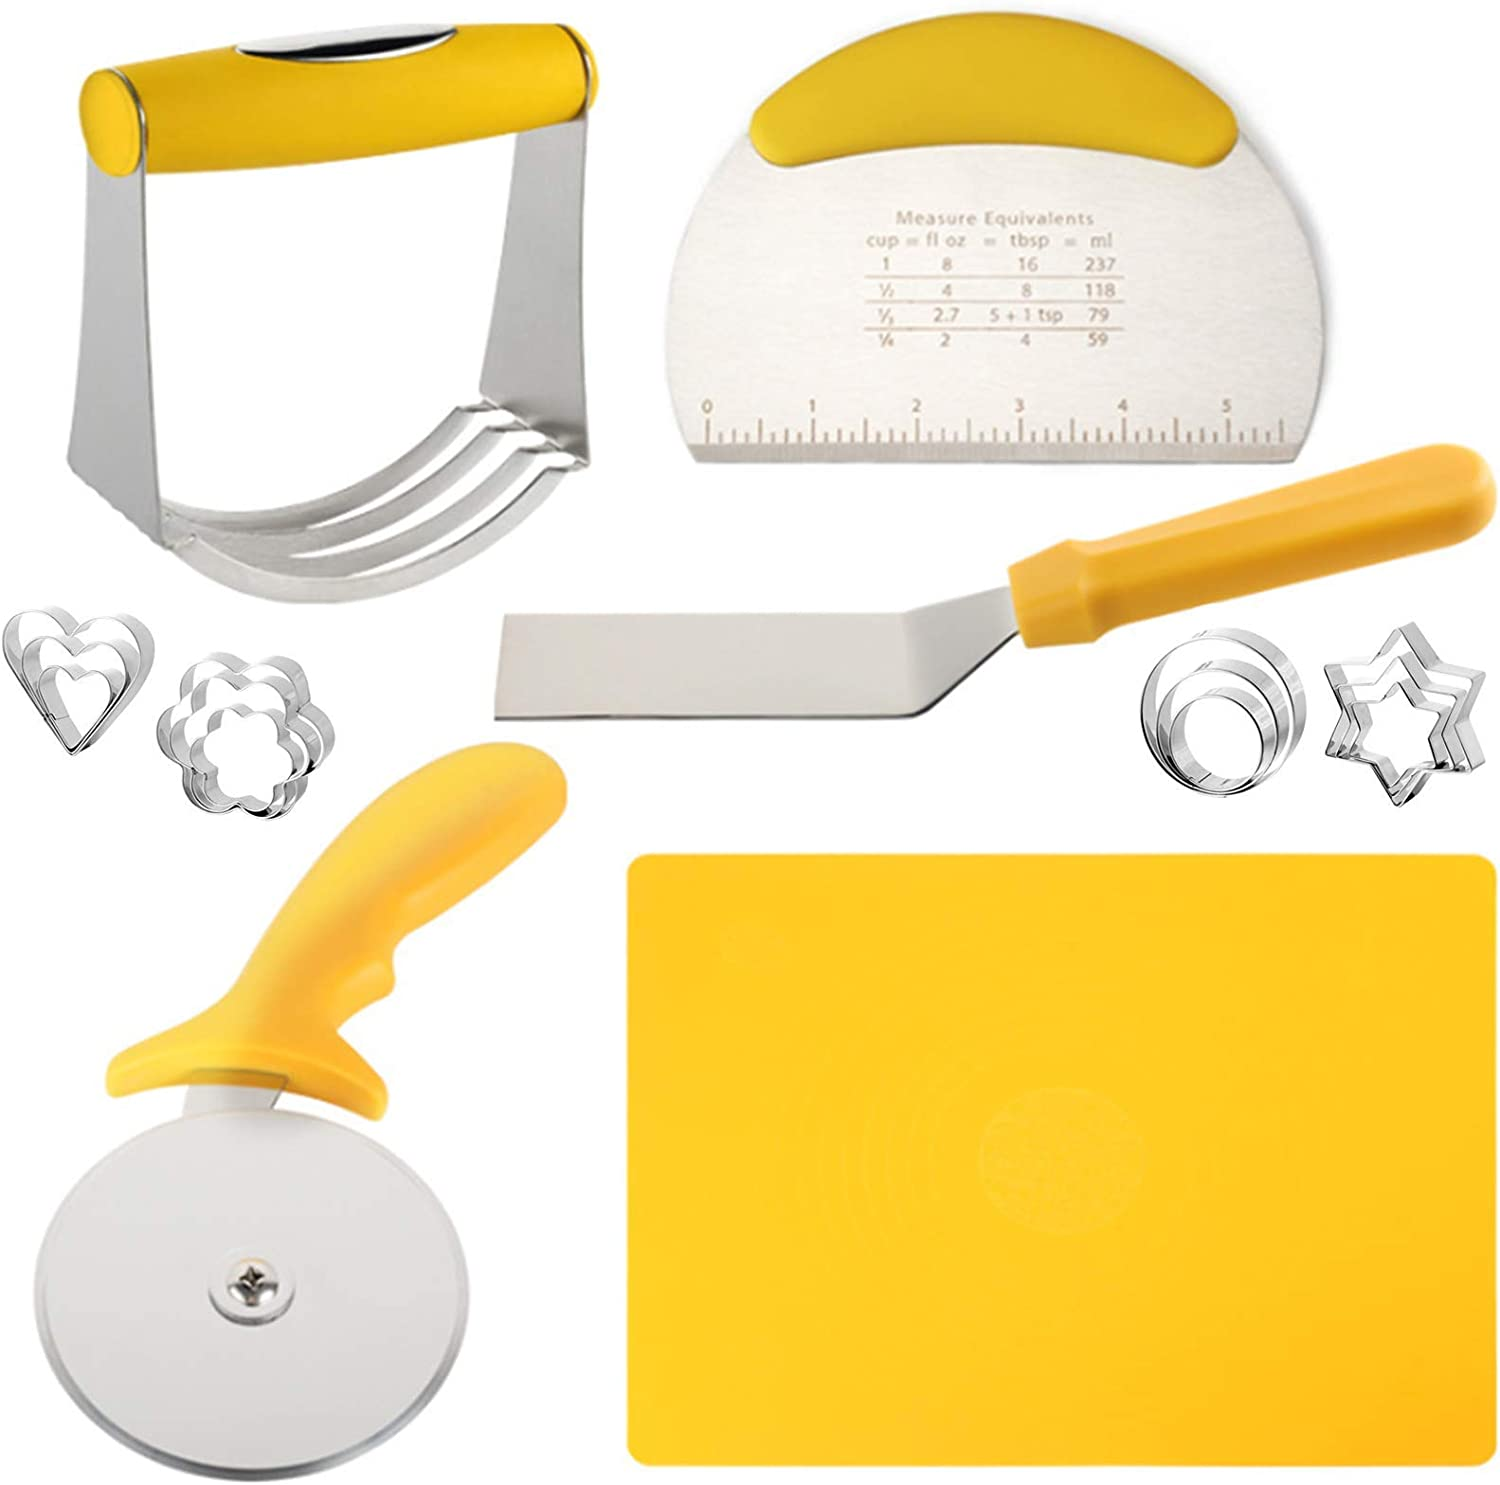 Baking Mats Silicone Pastry mat Extra with Large Thi Cheap bargain Measurement Max 88% OFF